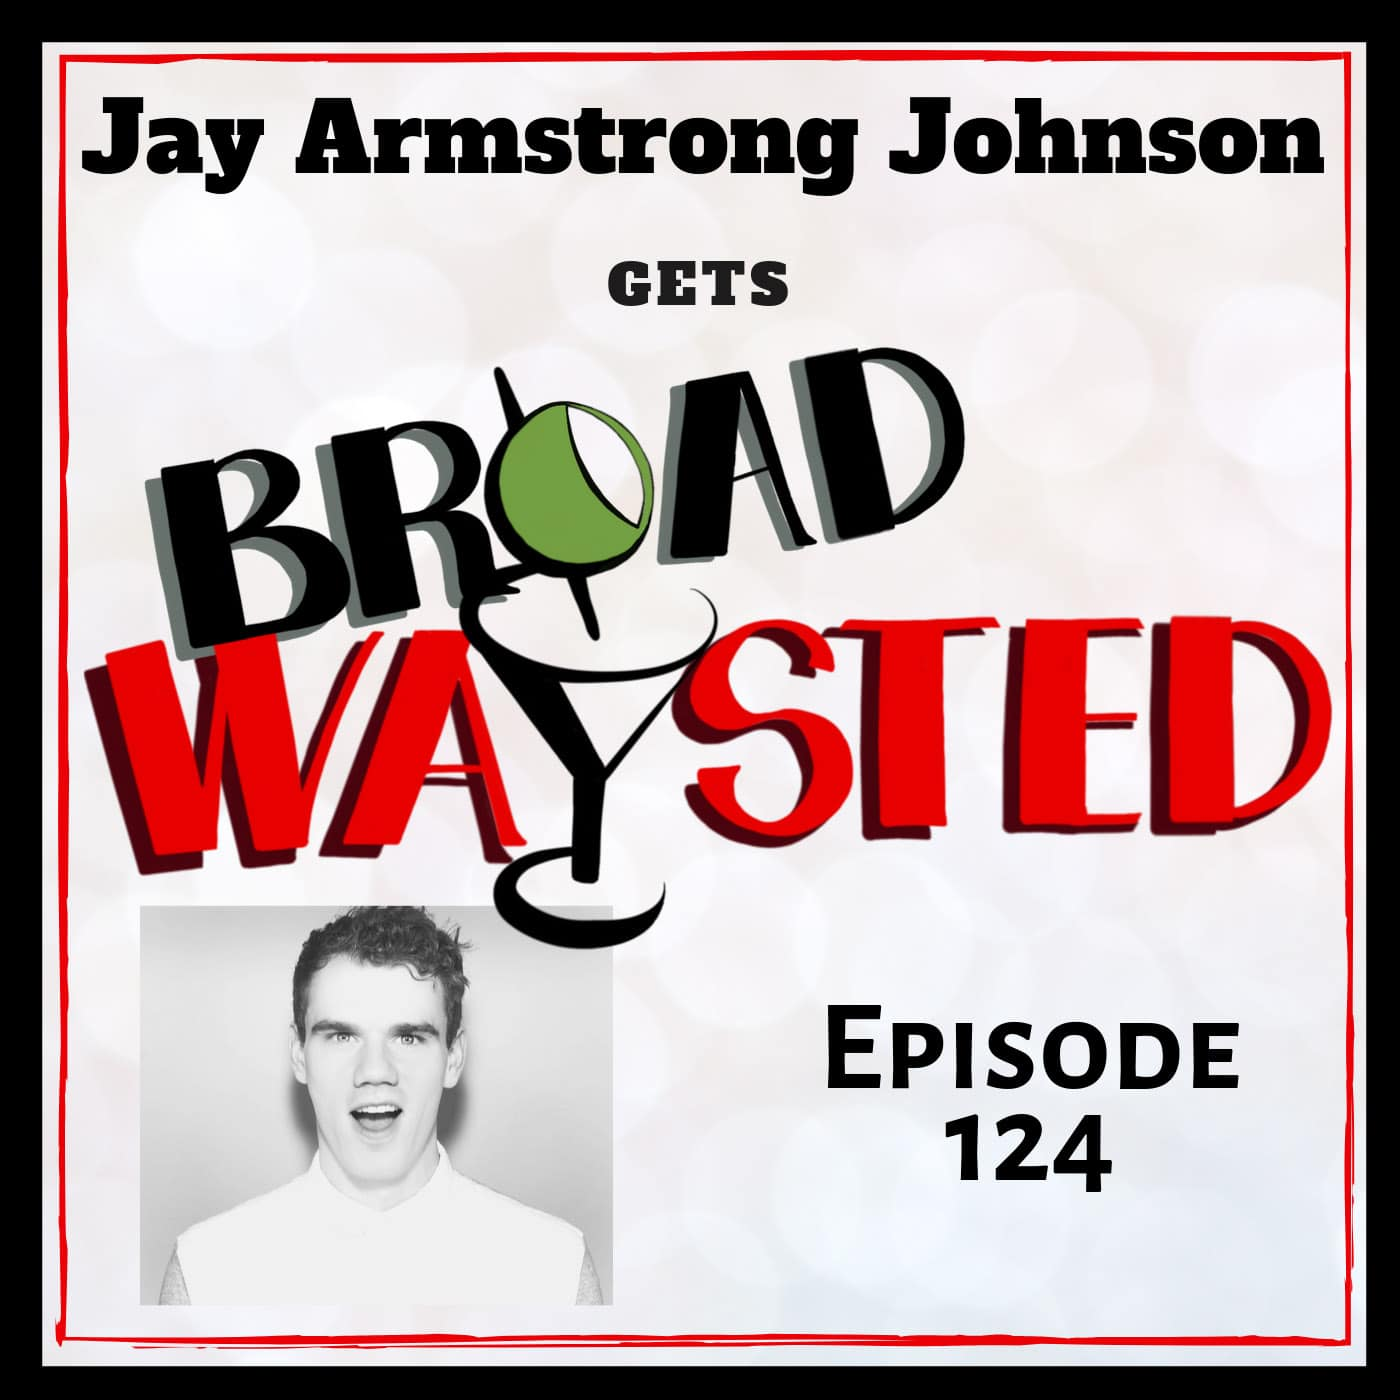 Broadwaysted Ep 124 Jay Armstrong Johnson